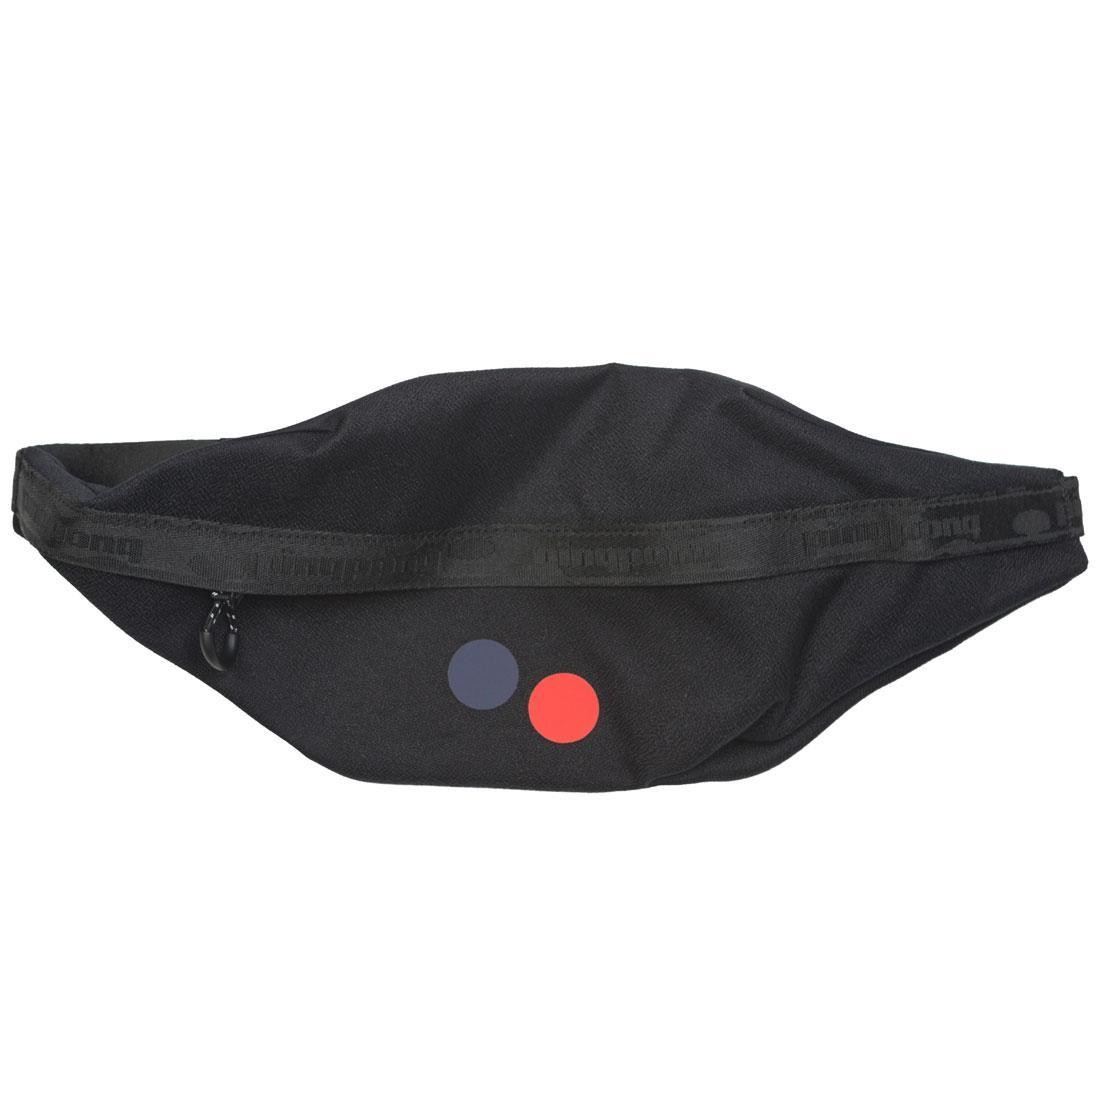 Pinqponq Brik Hip Bag (black)